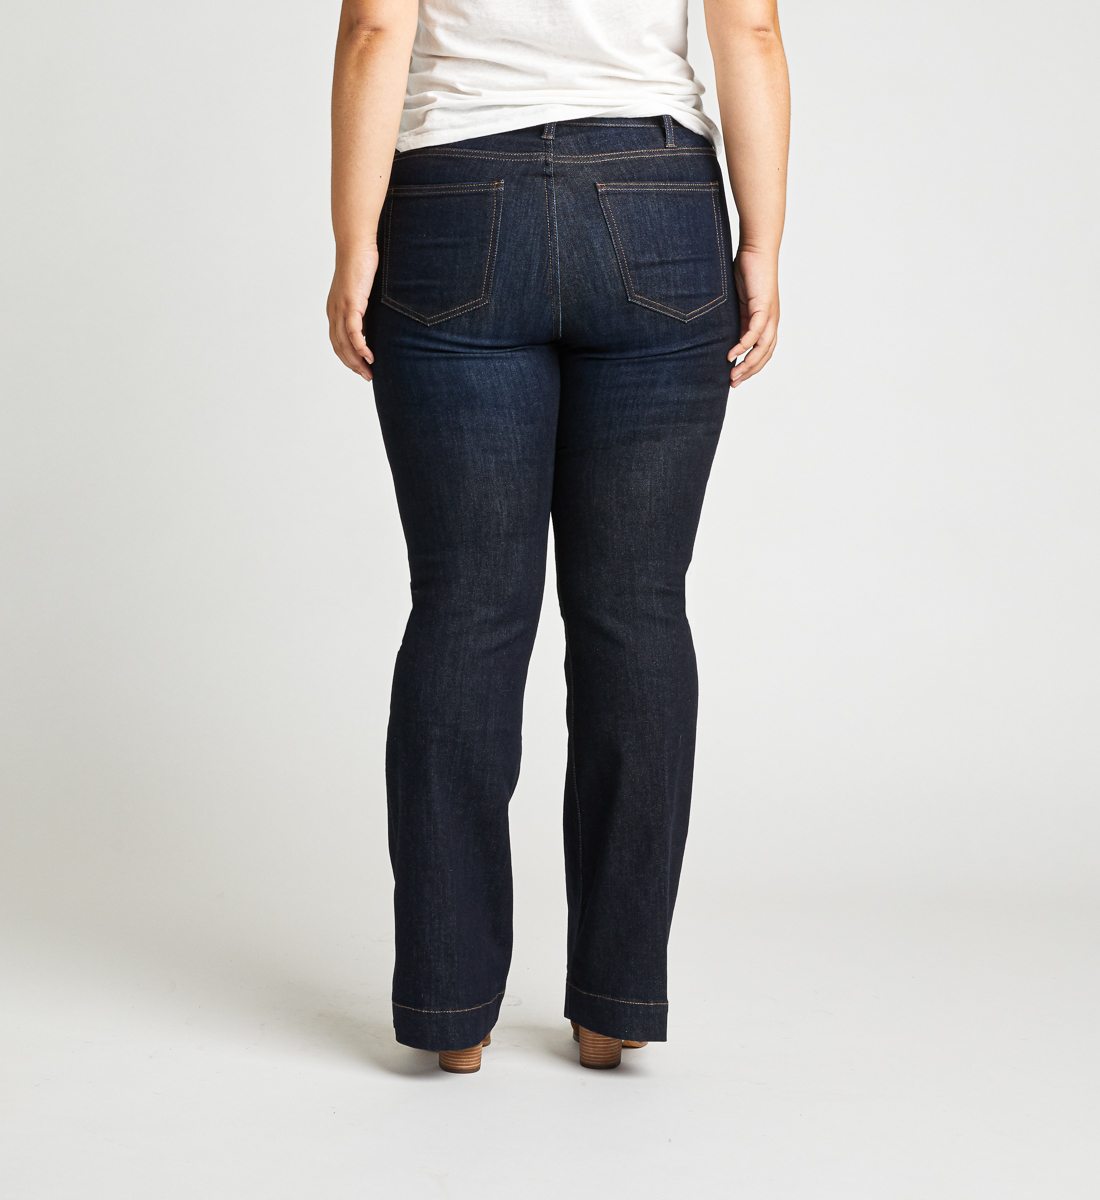 High Note High Rise Trouser Plus Size Jeans Back